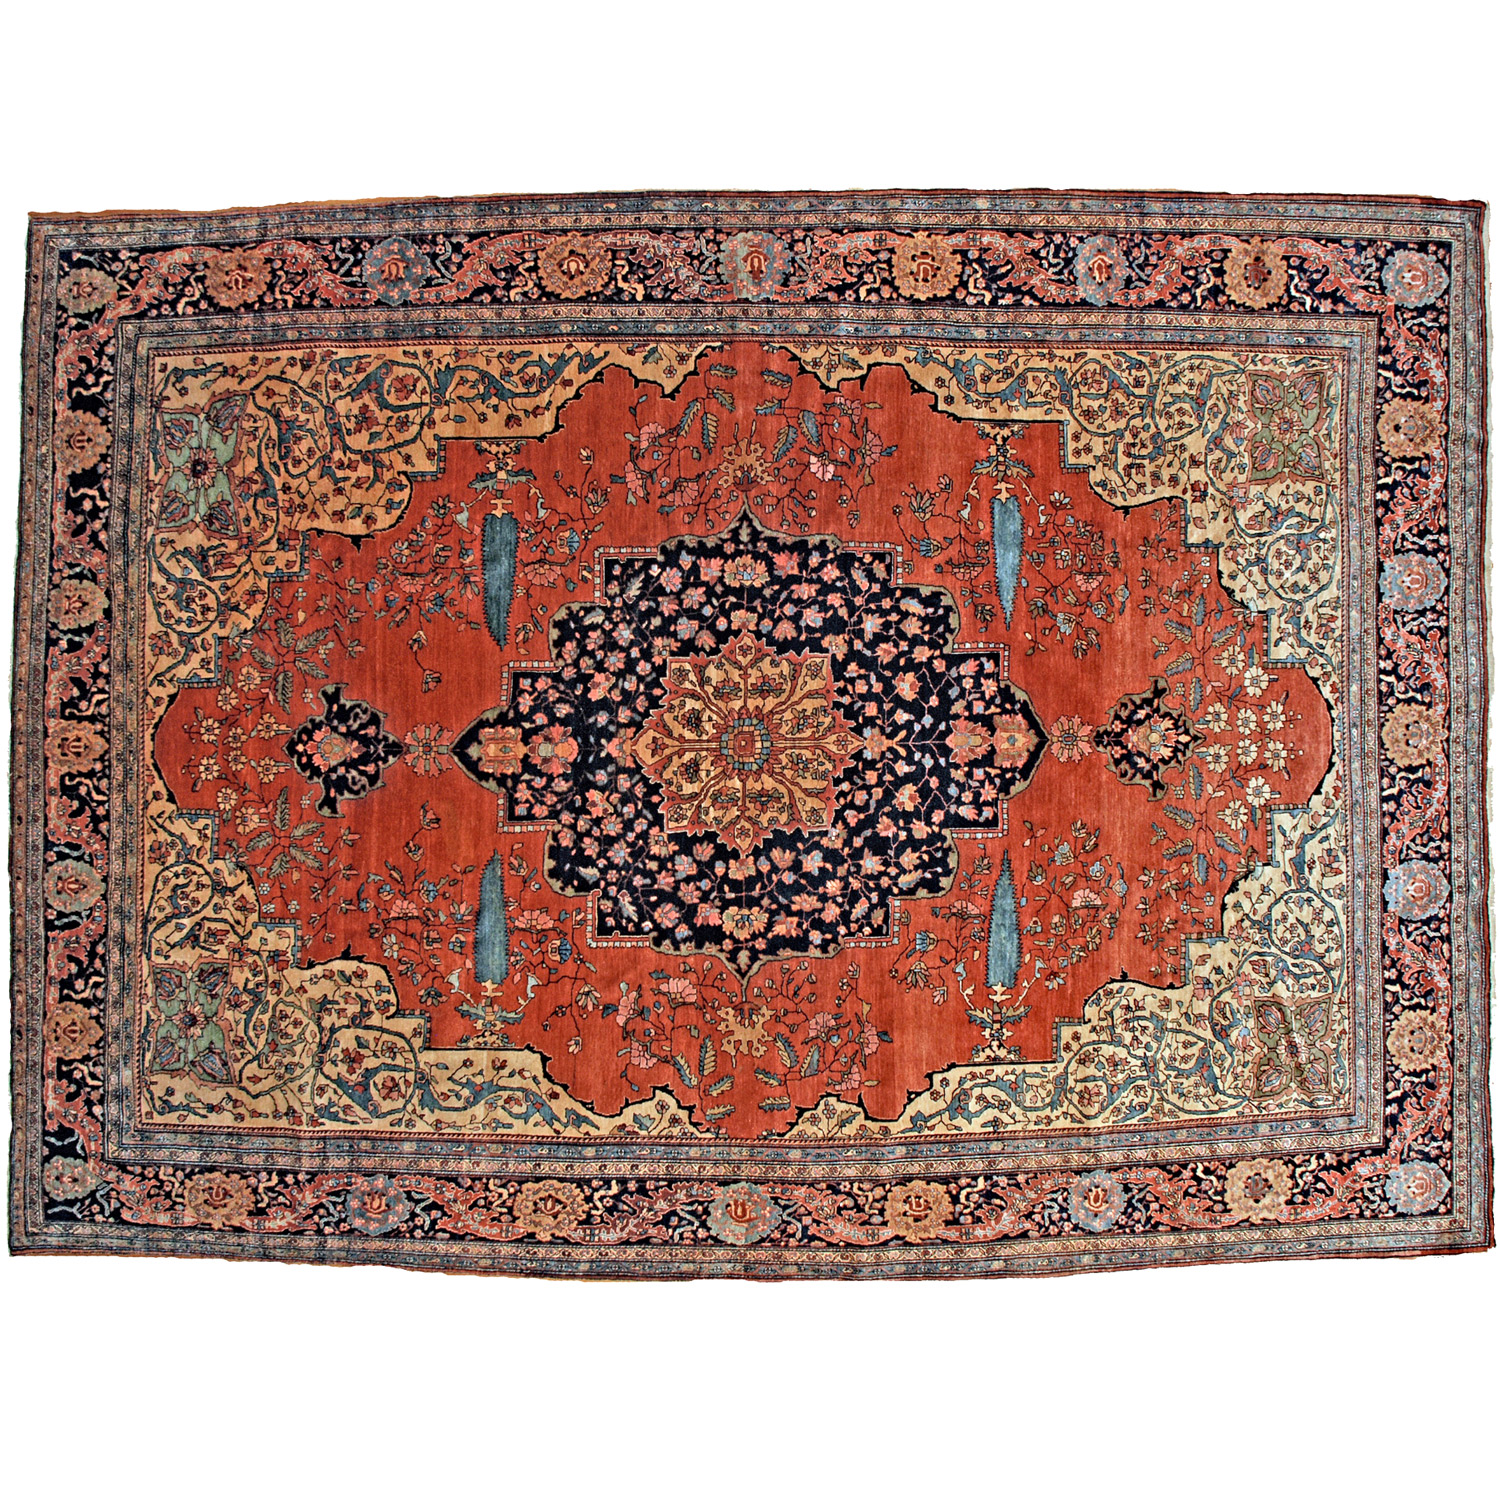 Antique central Persian Fereghan Sarou carpet with a navy medallion and four Cypress trees on a deep salmon color field